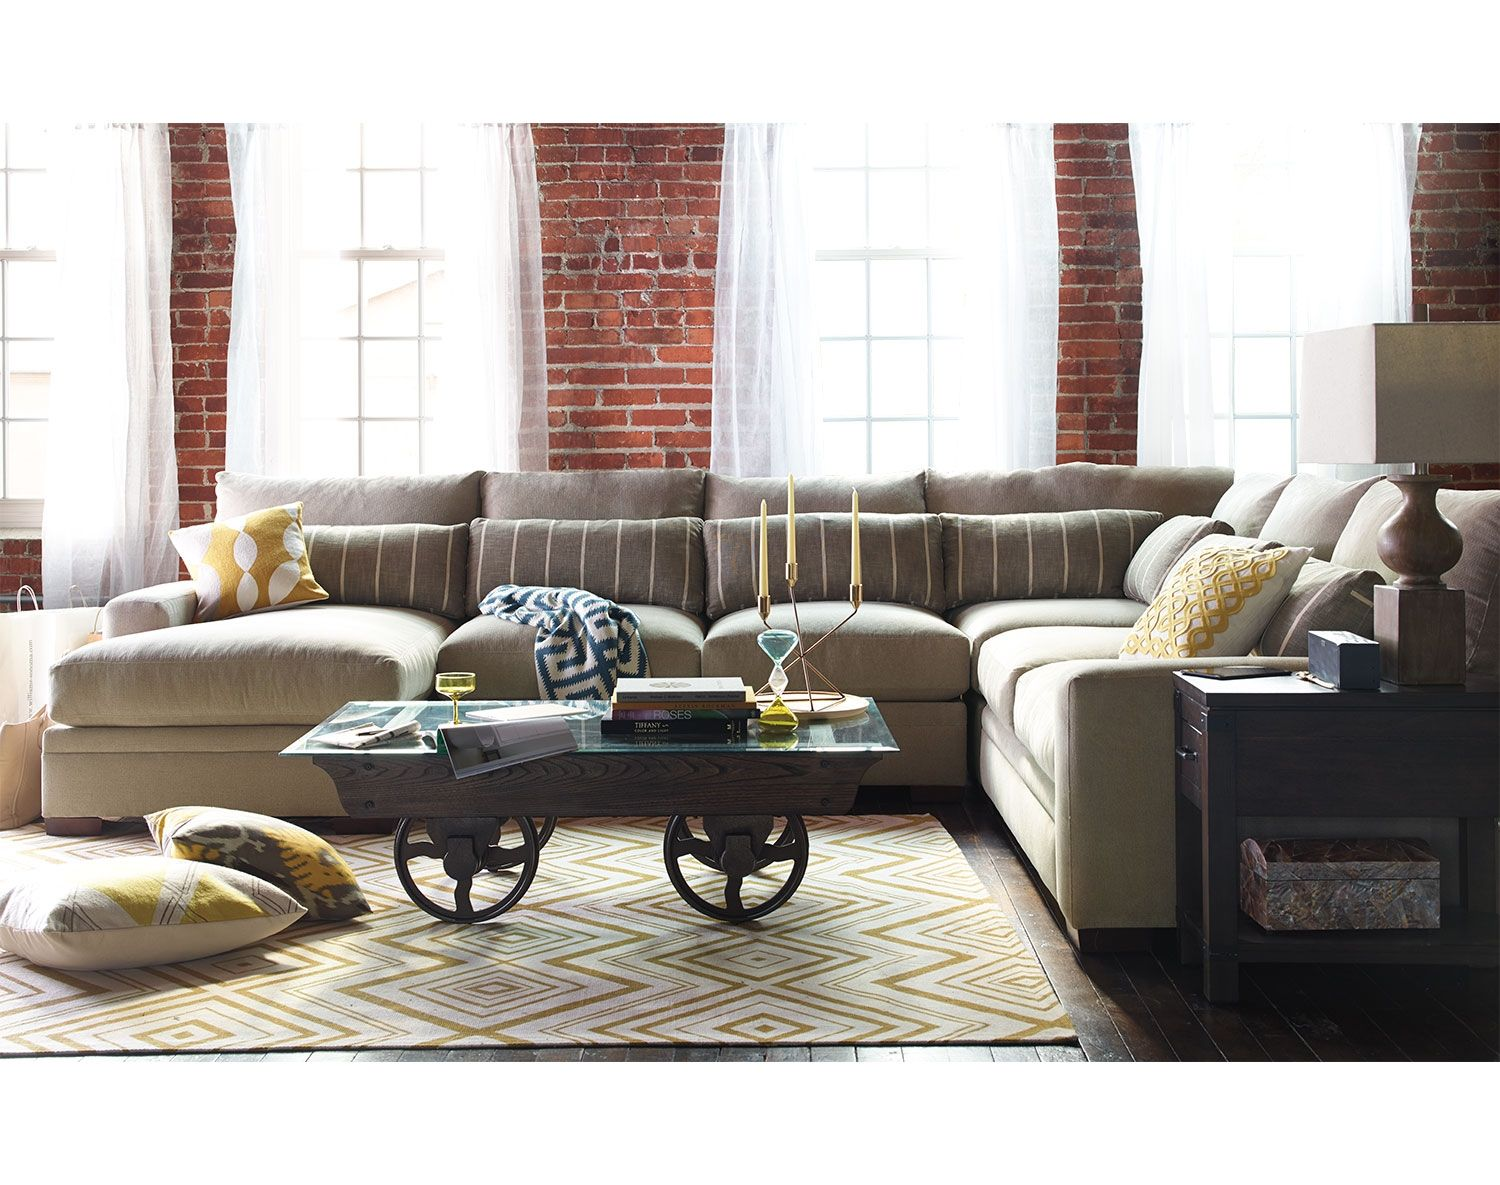 Living Room Design With Sectional Sofa Captivating My Favorite But It Cost $2999 The Ventura Collection Decorating Design